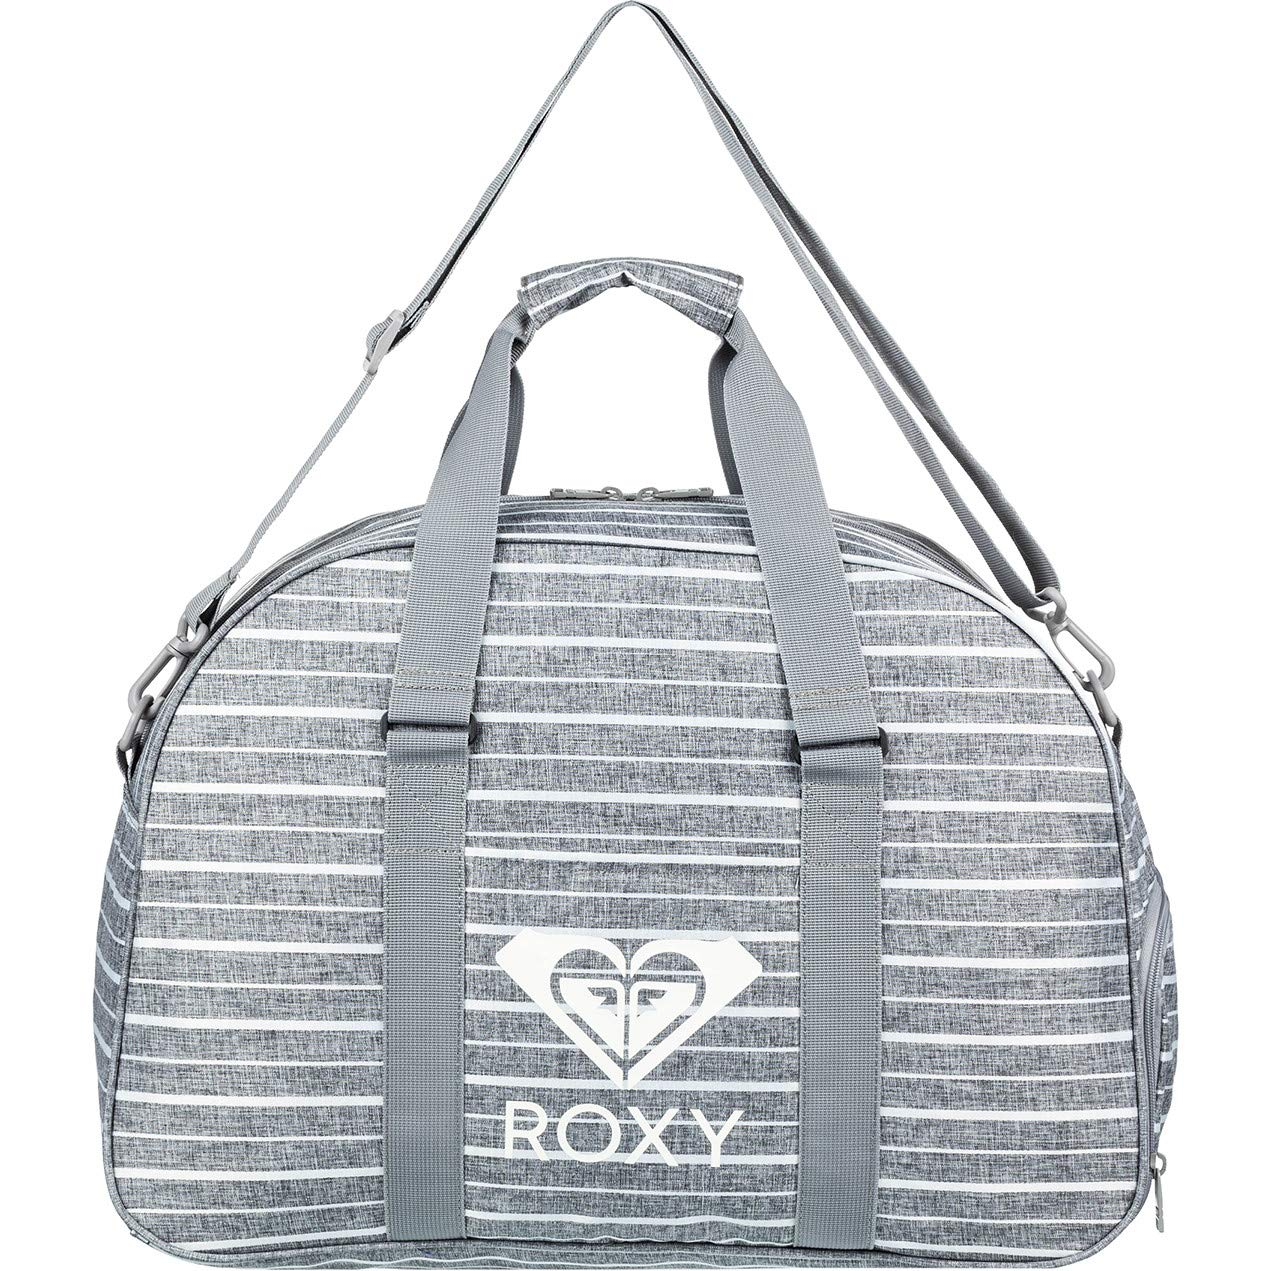 5b0ed85936 Details about Roxy Feel Happy 35L - Medium Sport Holiday Travel Duffle Bag